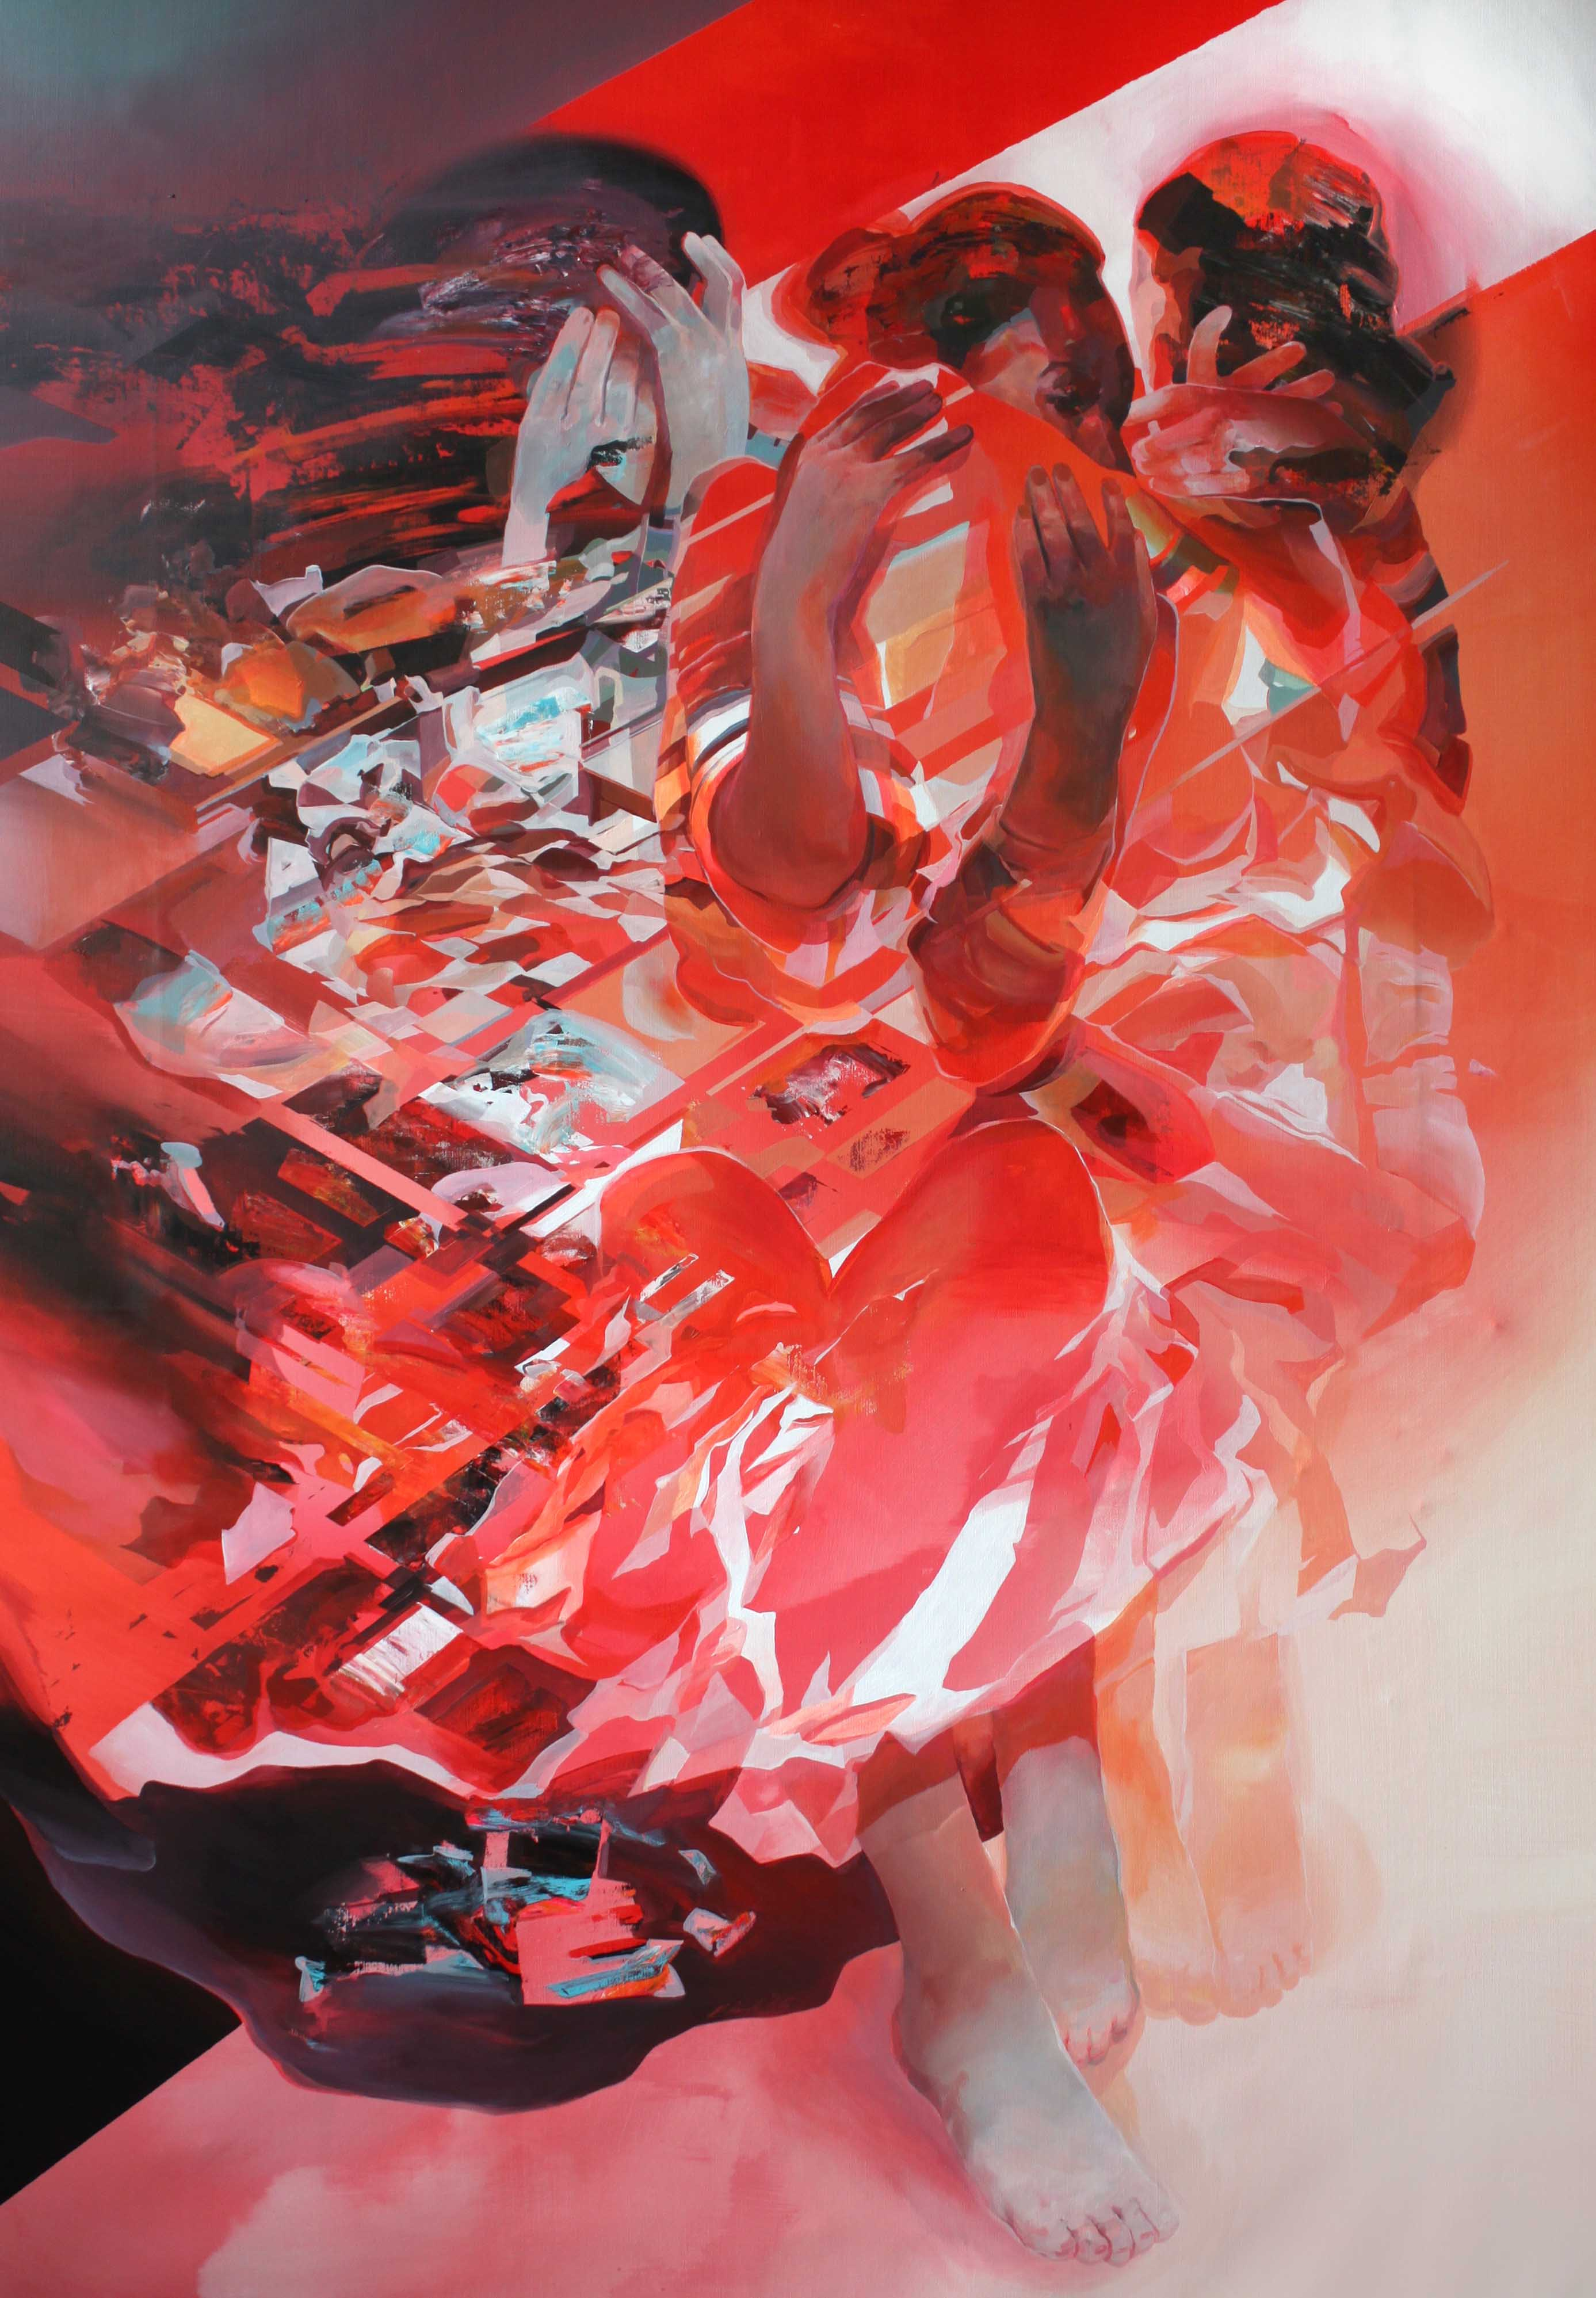 WK_Robert Proch_Red Dress_199x130cm_acrylic on canvas 2016_lr